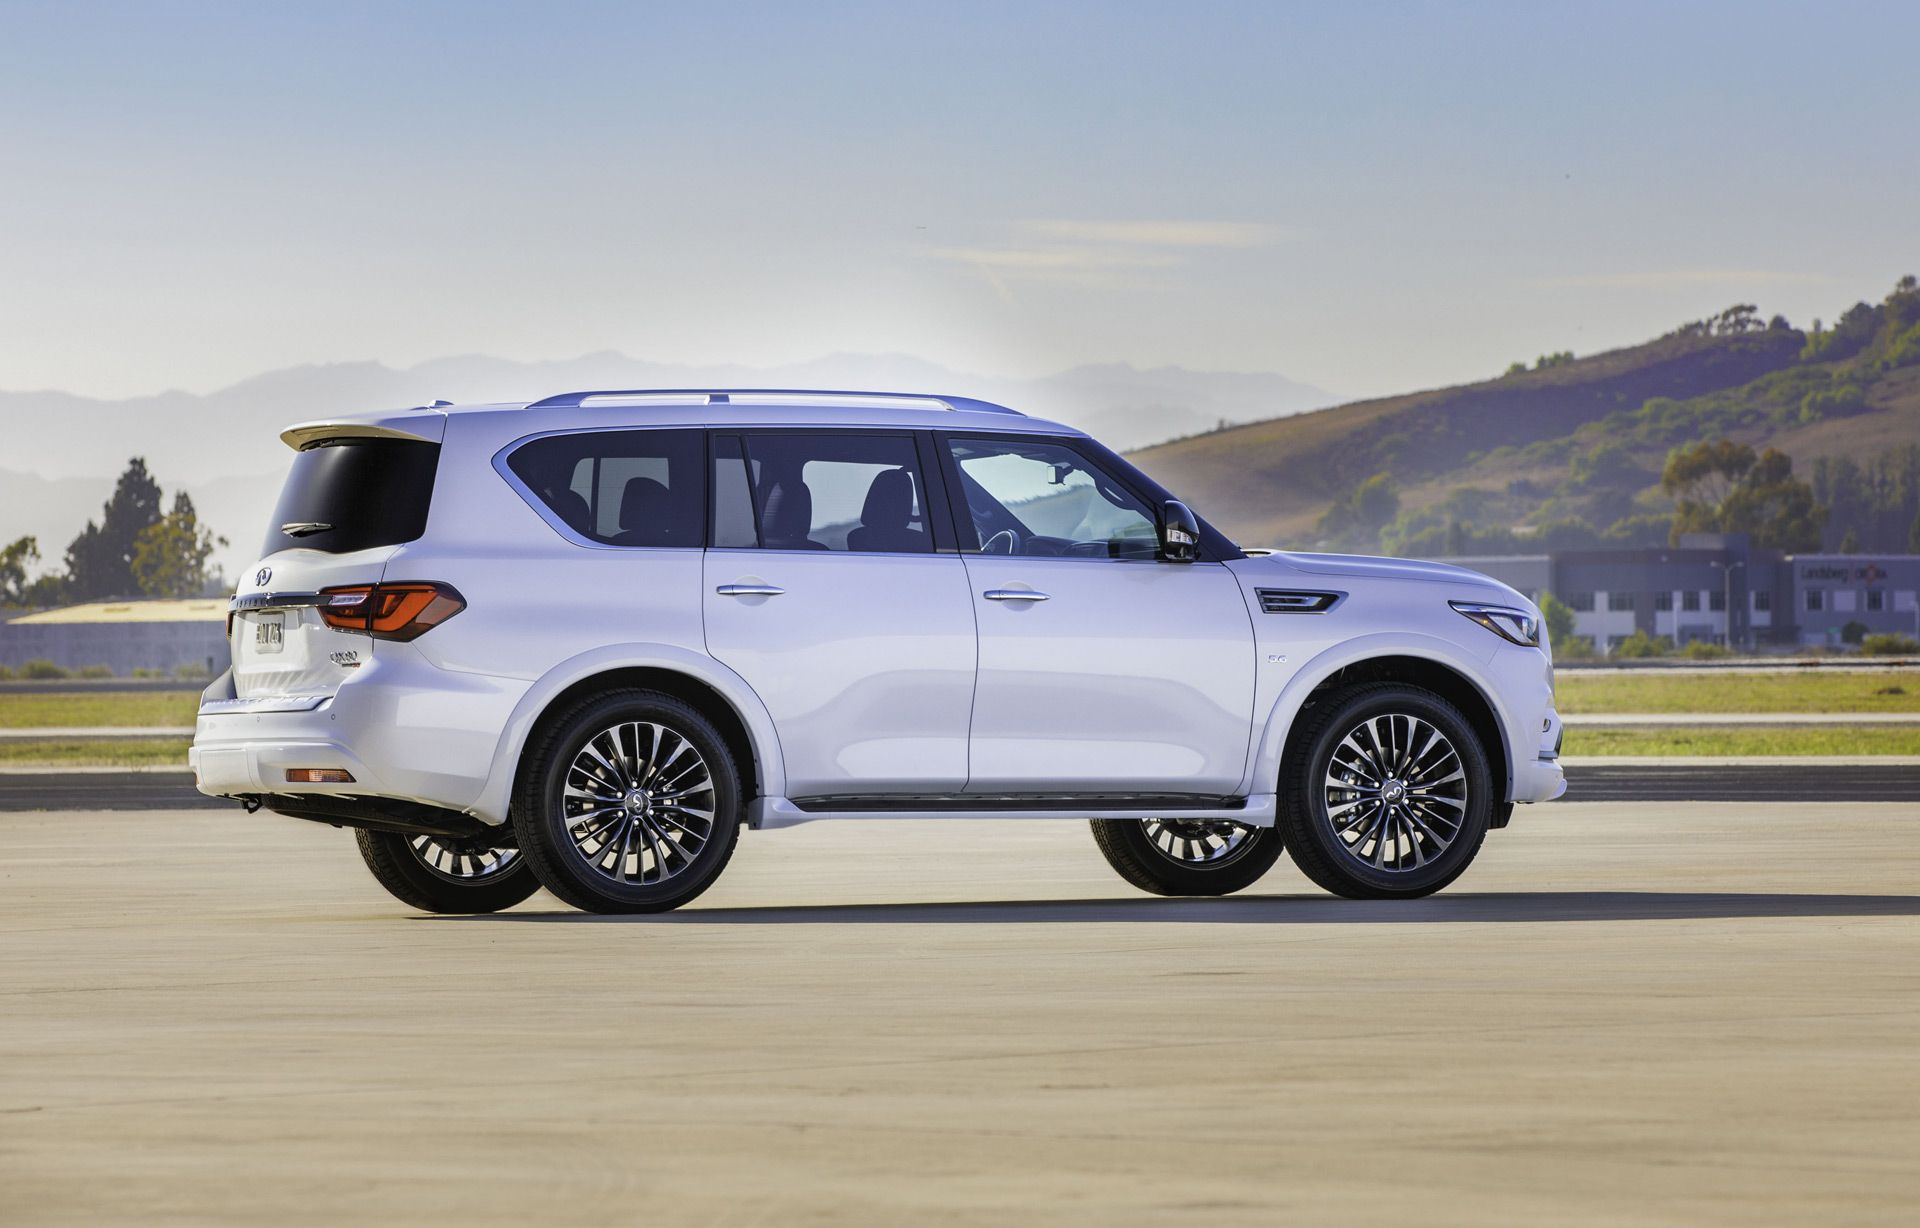 2020 Infiniti Qx80 Arrives With New Dash Edition 30 Package In 2020 Infiniti Automobile Suv Car